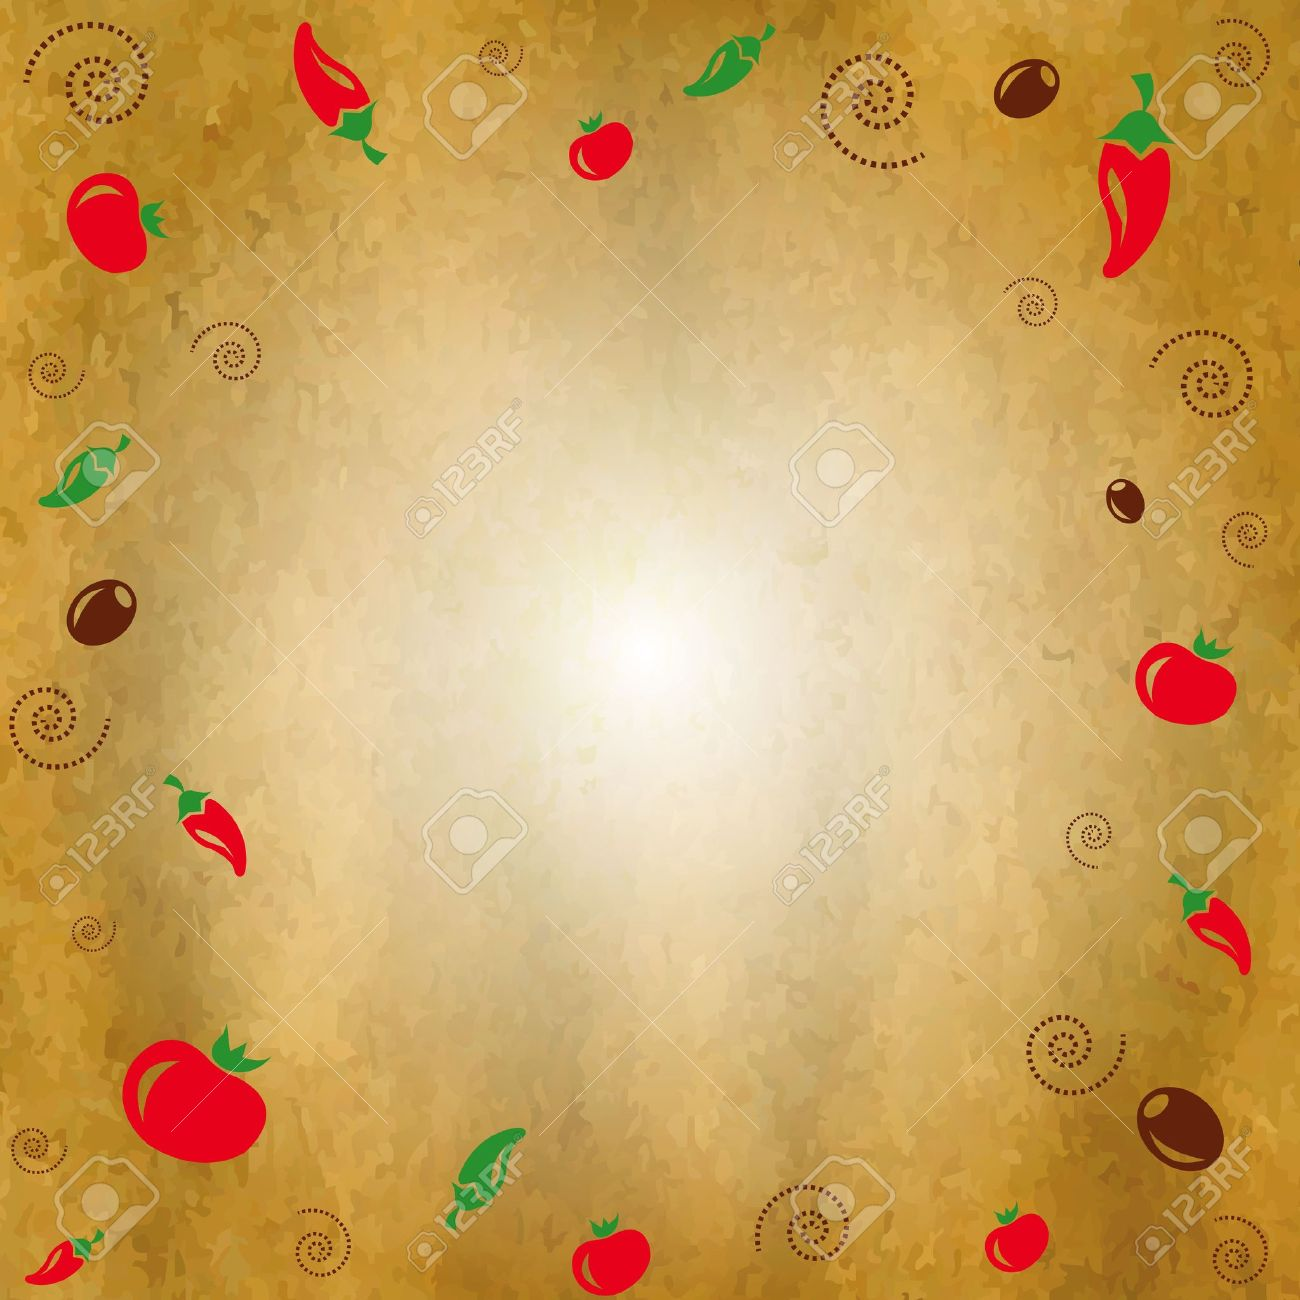 vintage background with icons vegetables, illustration royalty free